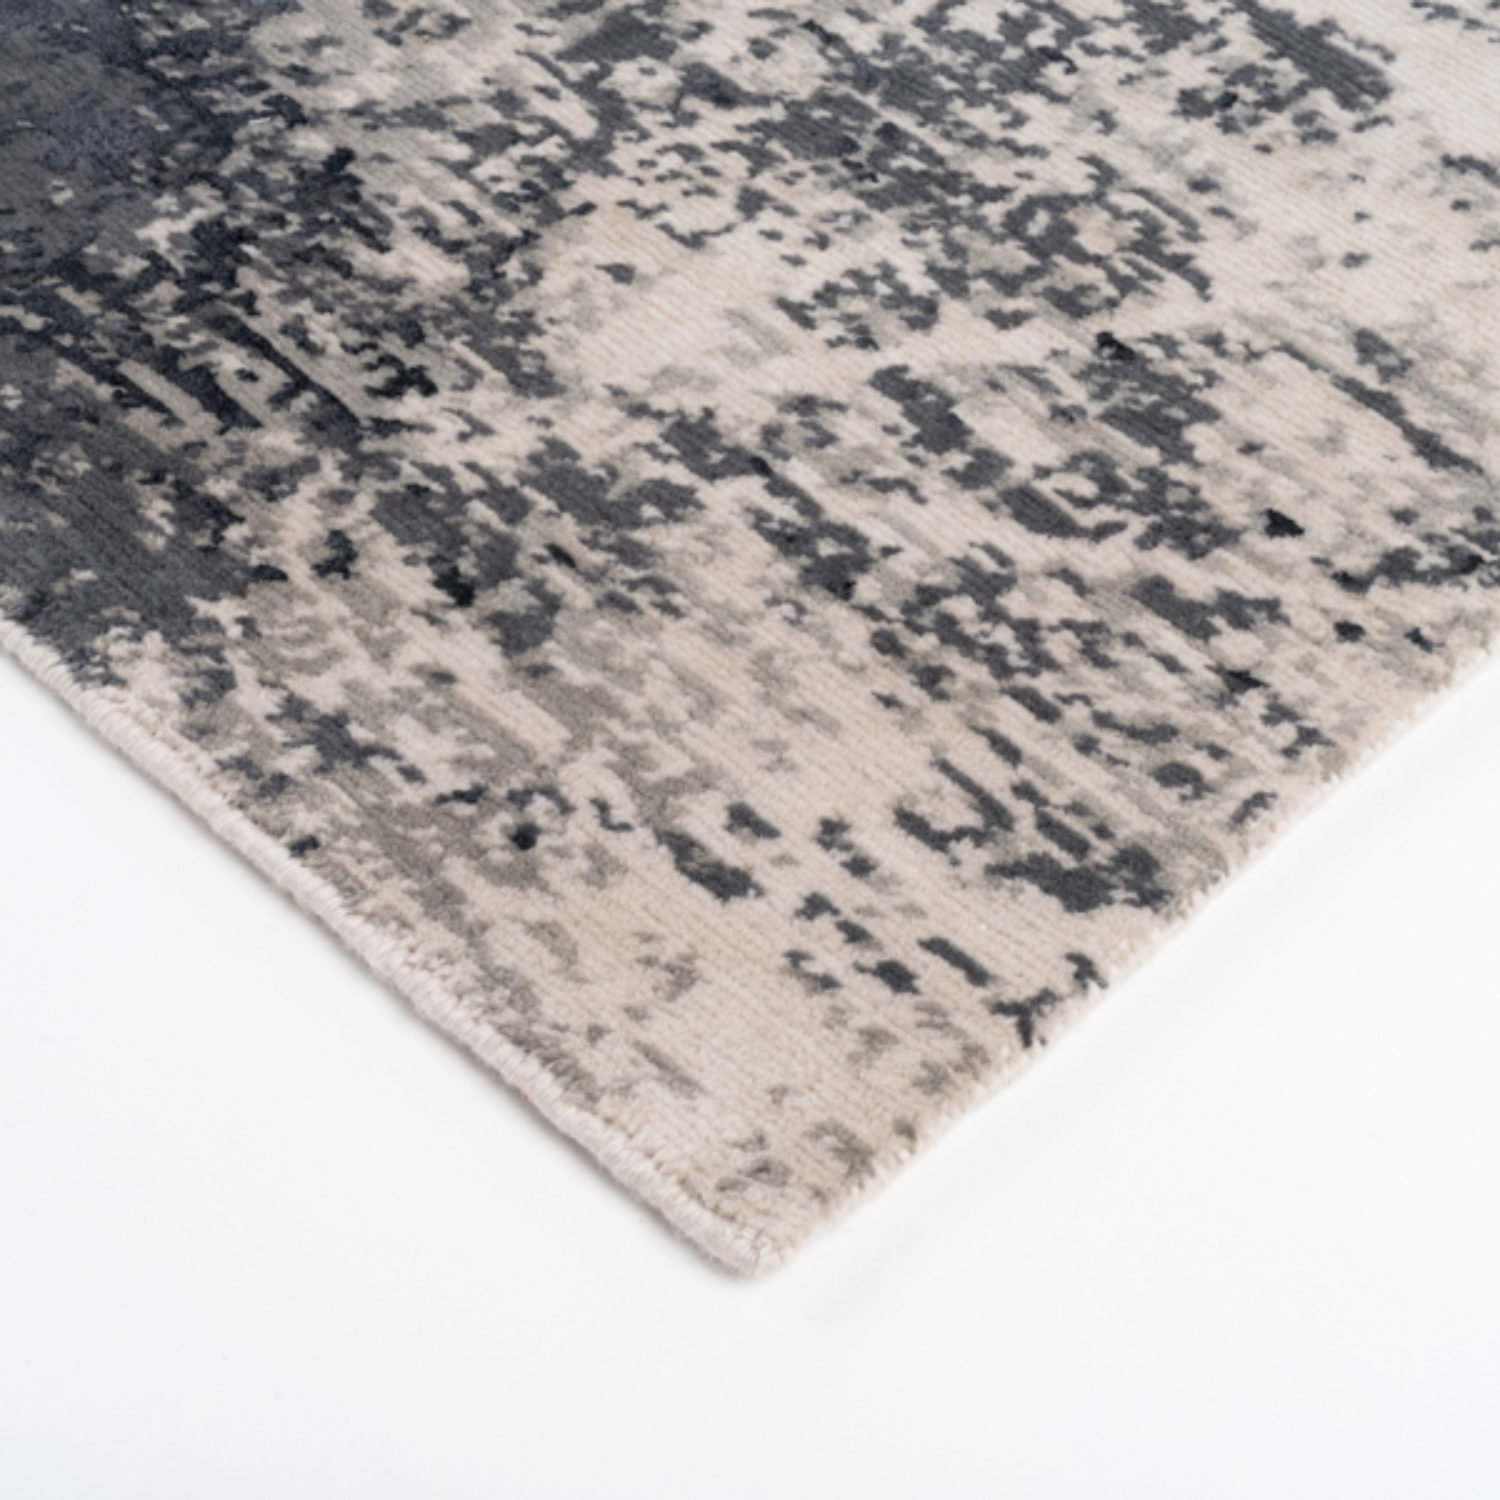 An abstract design that defines the weathered aesthetic